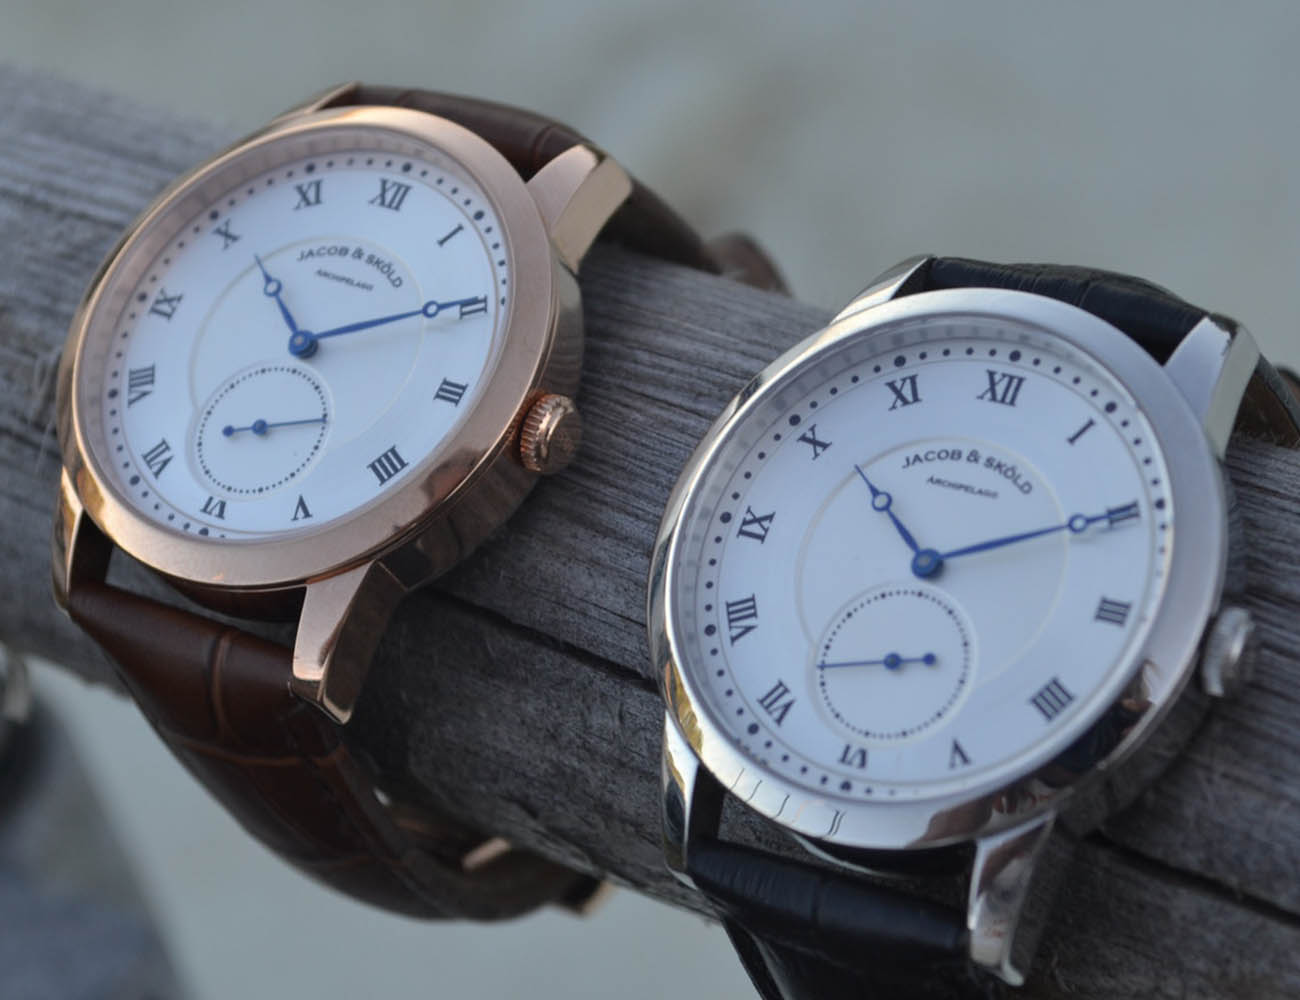 Minimal+And+Quality+Wristwatches+From+Jacob+And+Skoeld